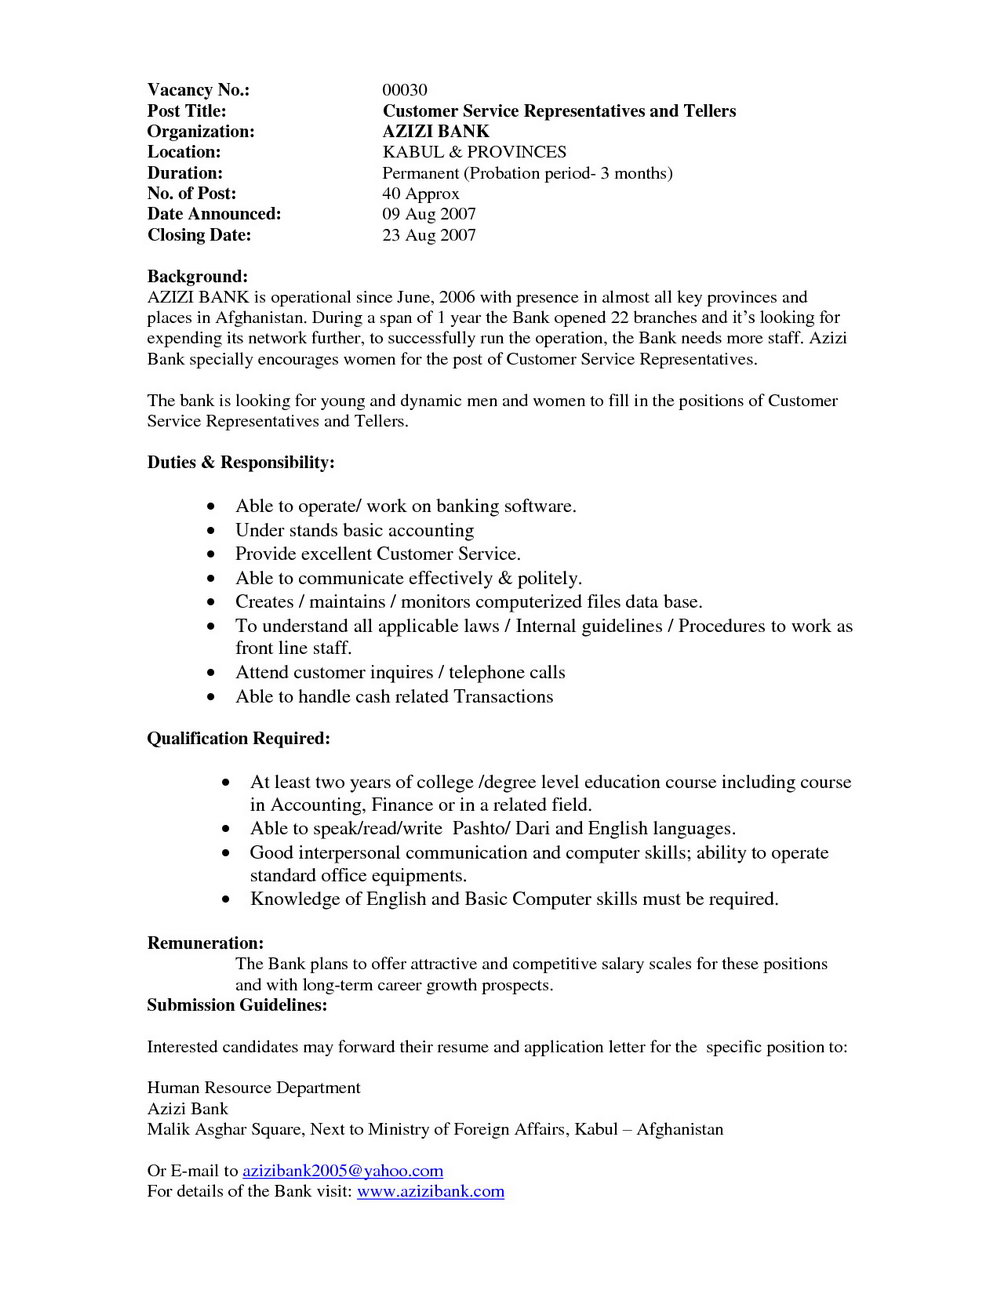 Sample Resume For Dot Net Developer Experience 1 Years